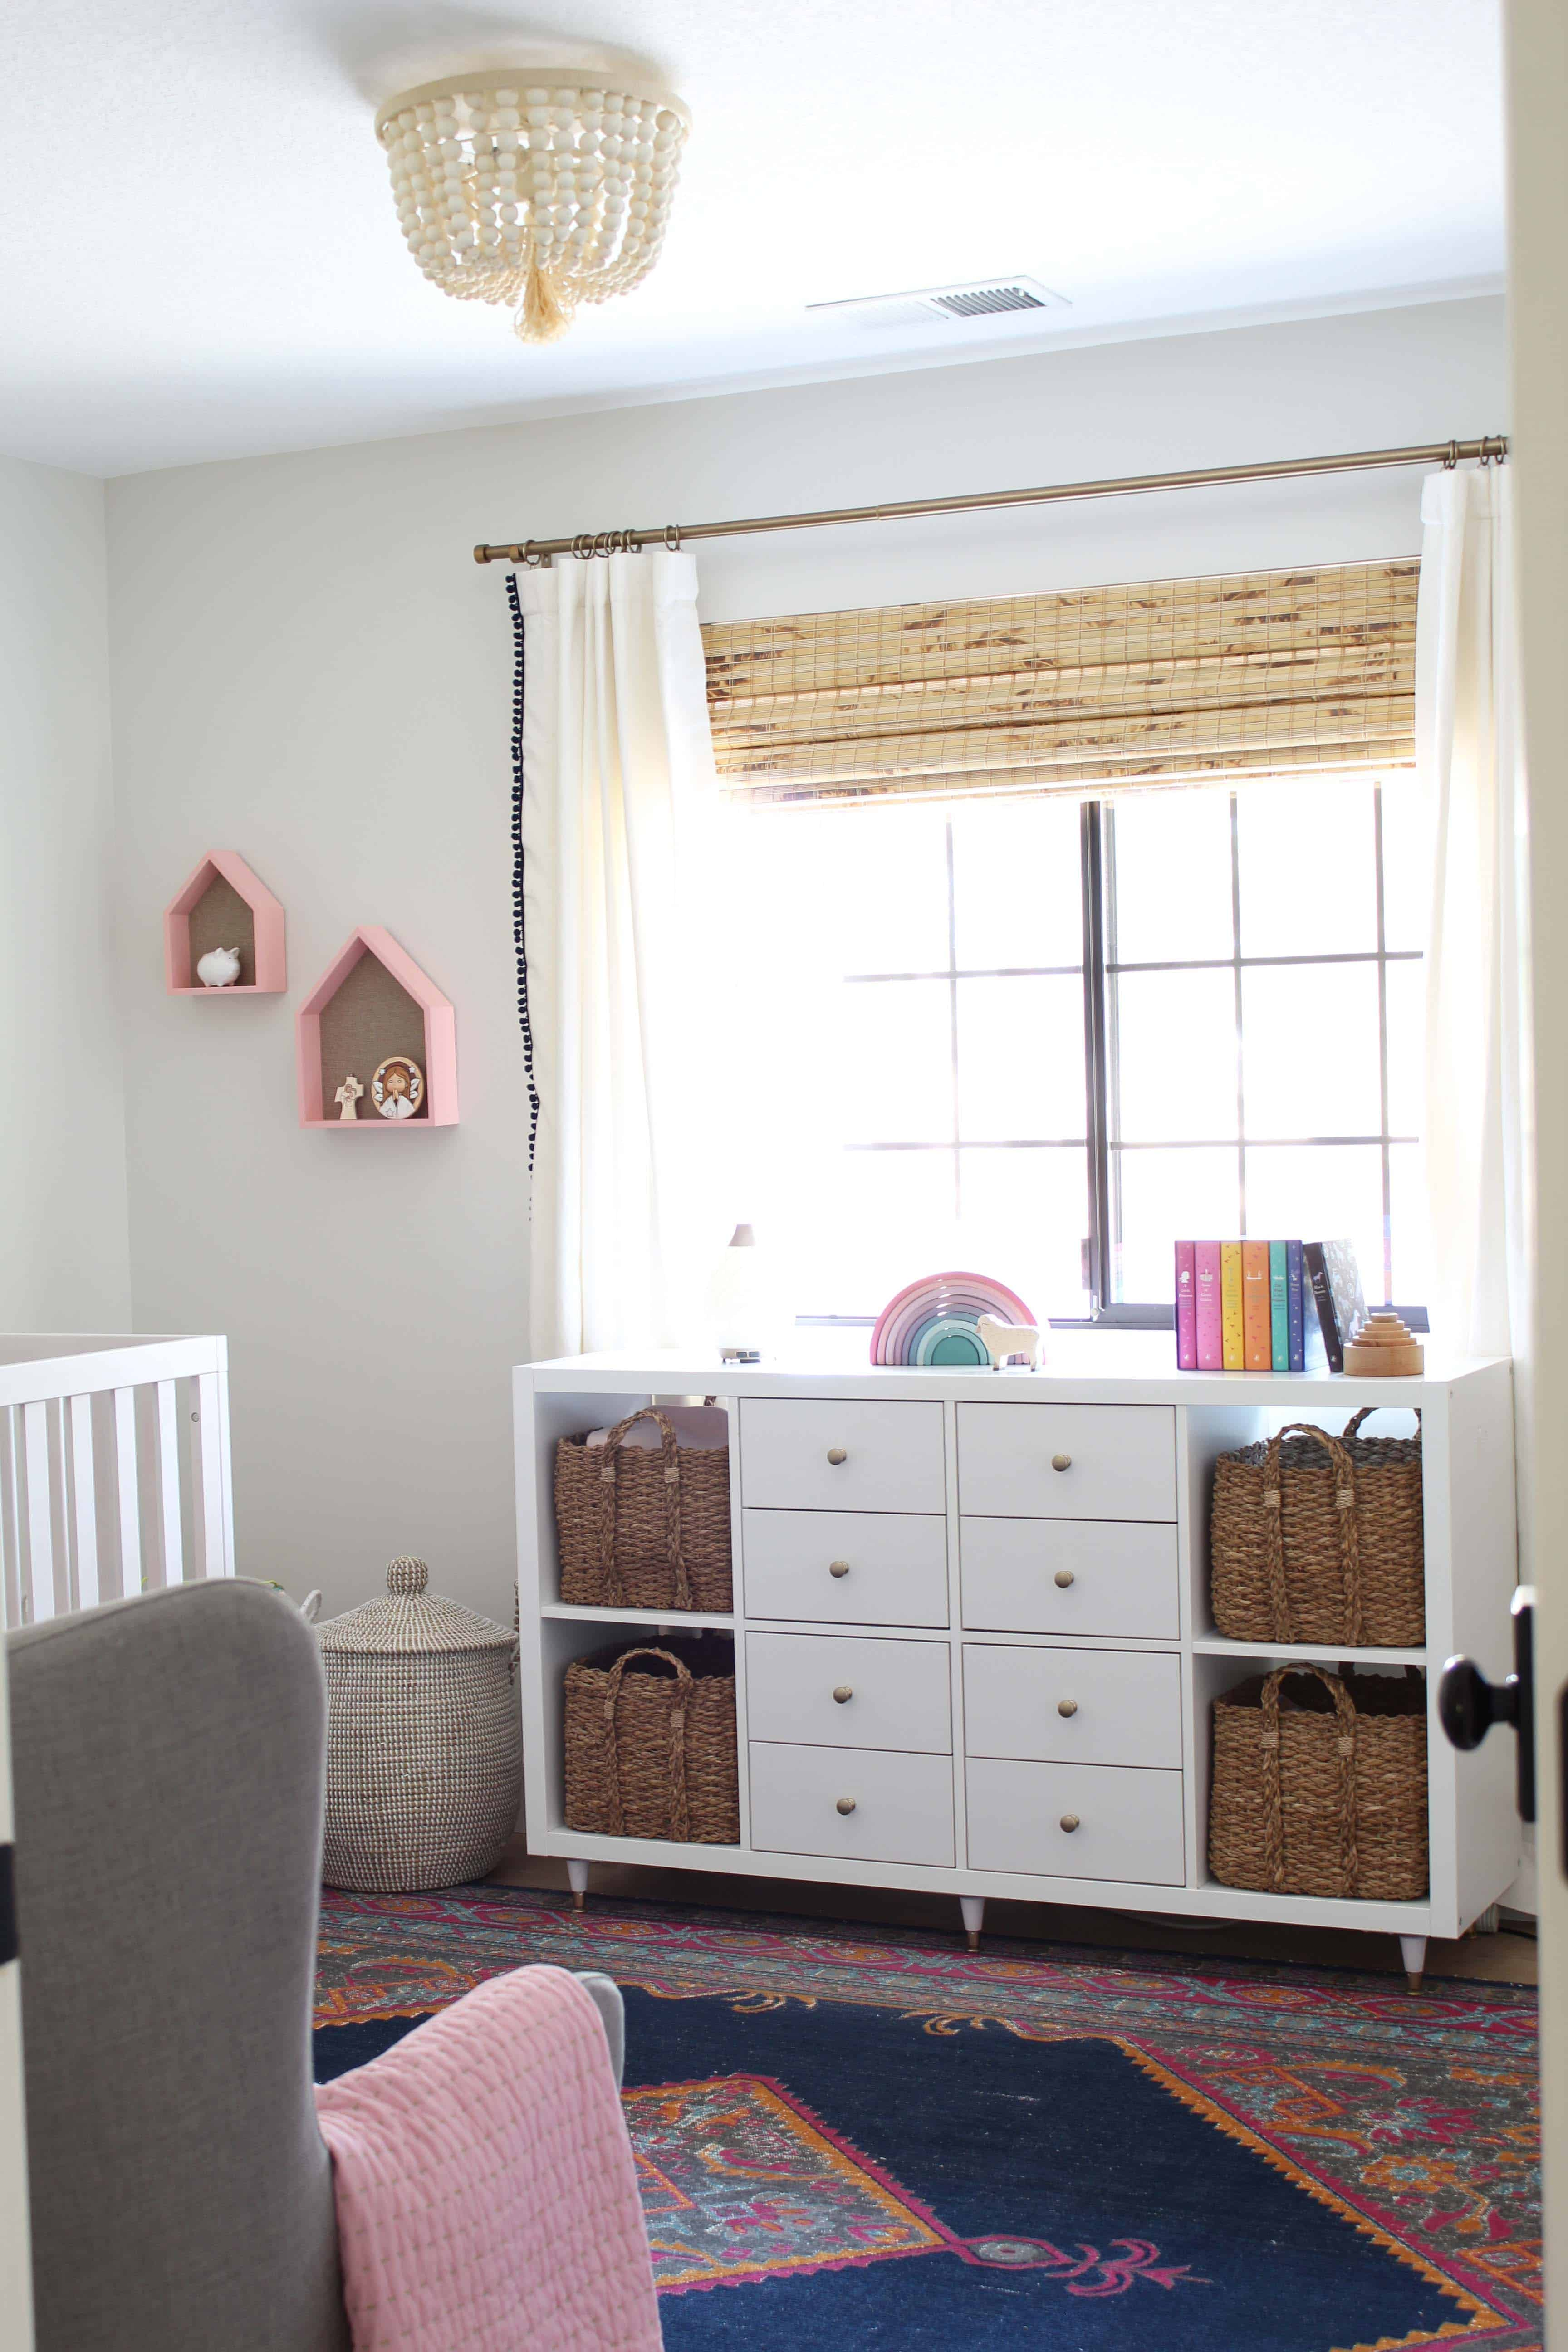 pottery barn kids dahlia flush mount, lowes woven wood blinds, ikea kallax changing table hack, puffin classic book set